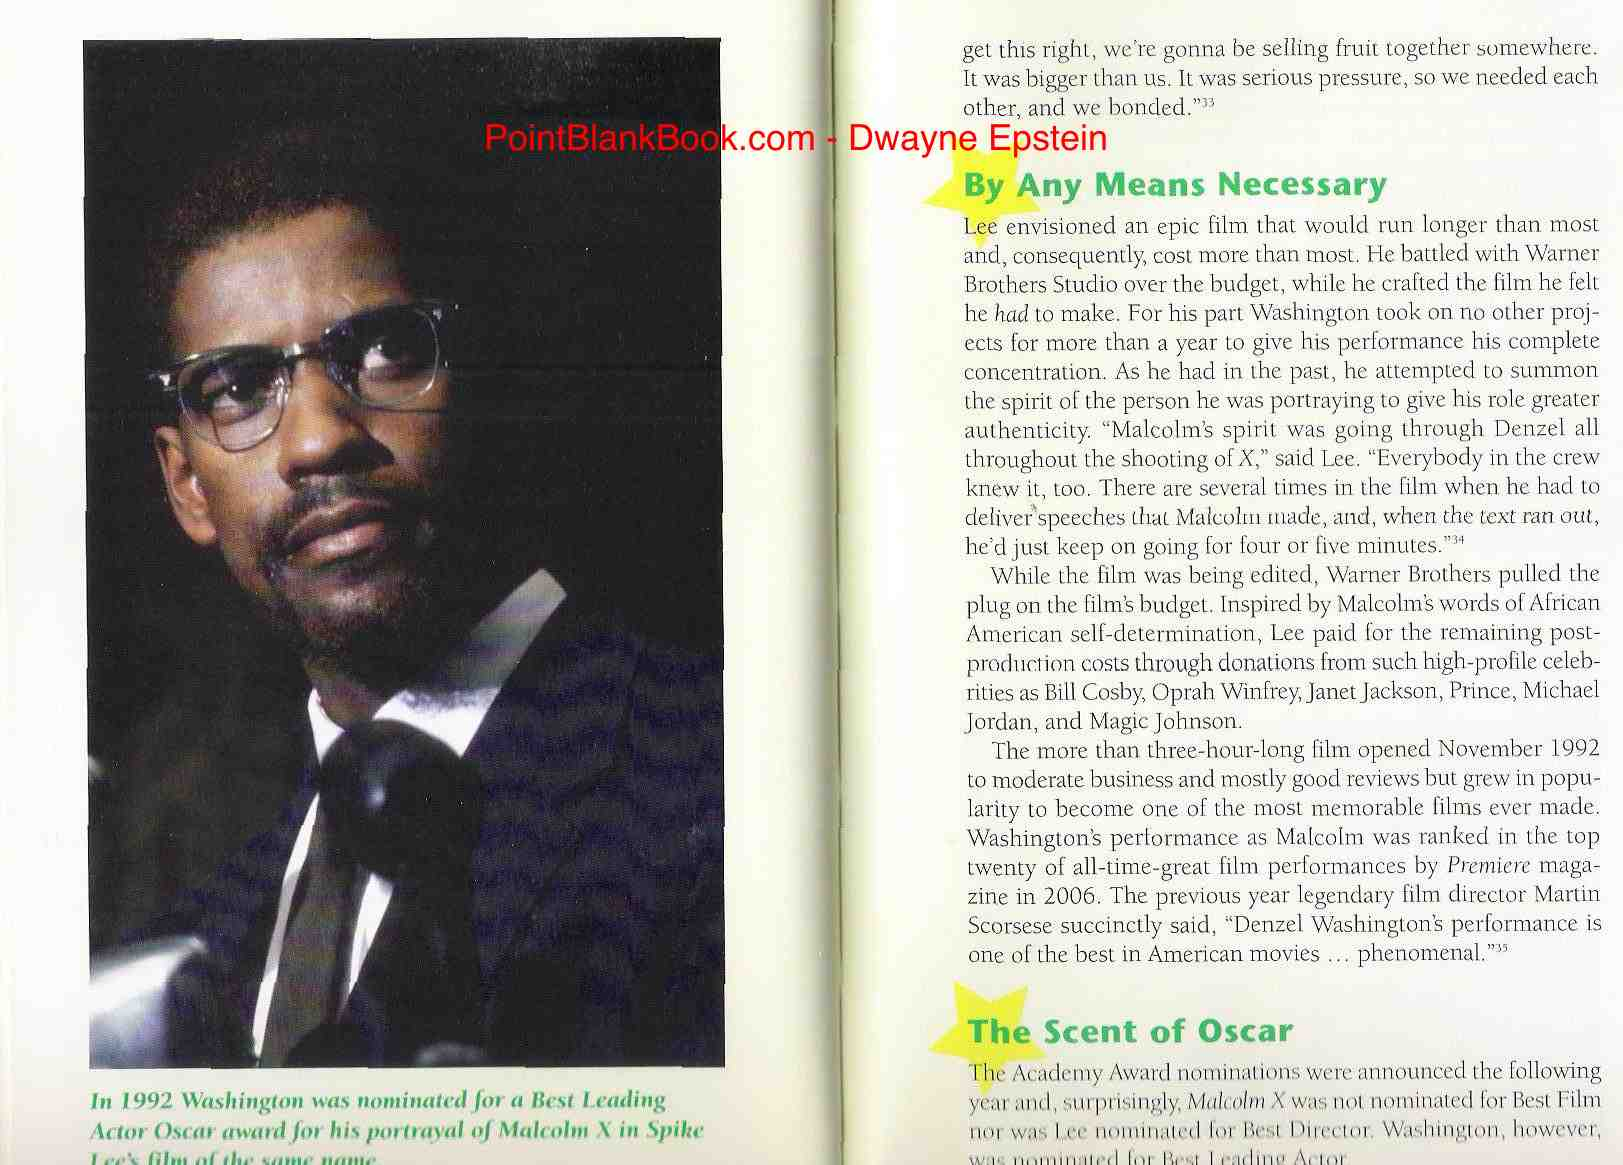 Denzel Washingtons performance in MALCOLM X, alog with TRAINING DAY remain two of all time favorites and writing about them is one of the joys of what I do for a living.